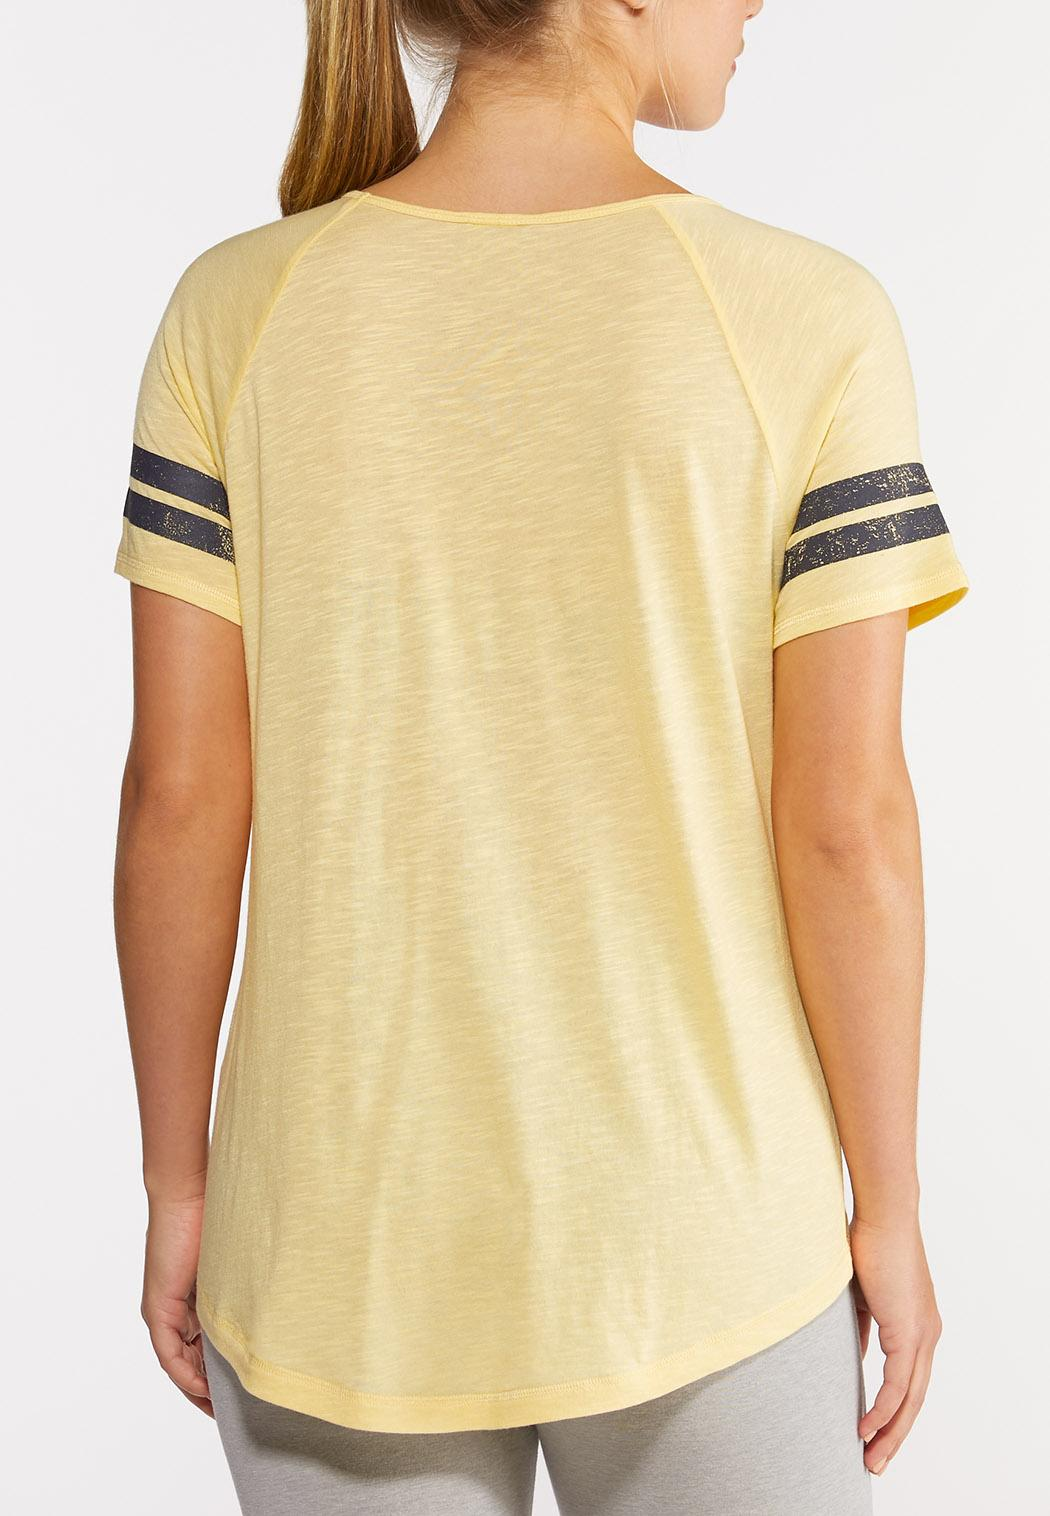 Plus Size Weekends And Sunshine Tee (Item #44274586)